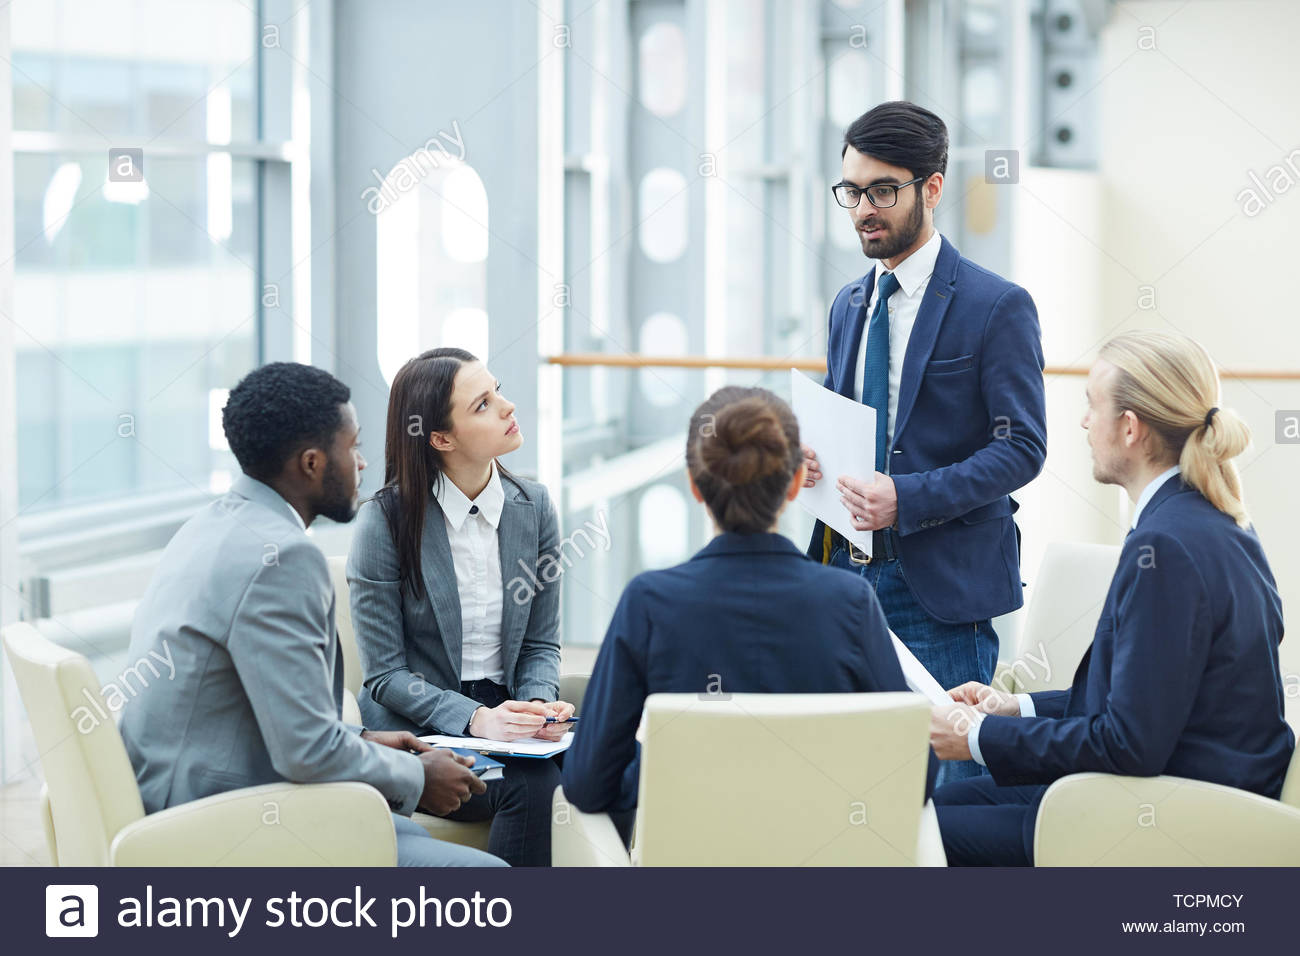 Recruiters Stock Photos & Recruiters Stock Images - Alamy